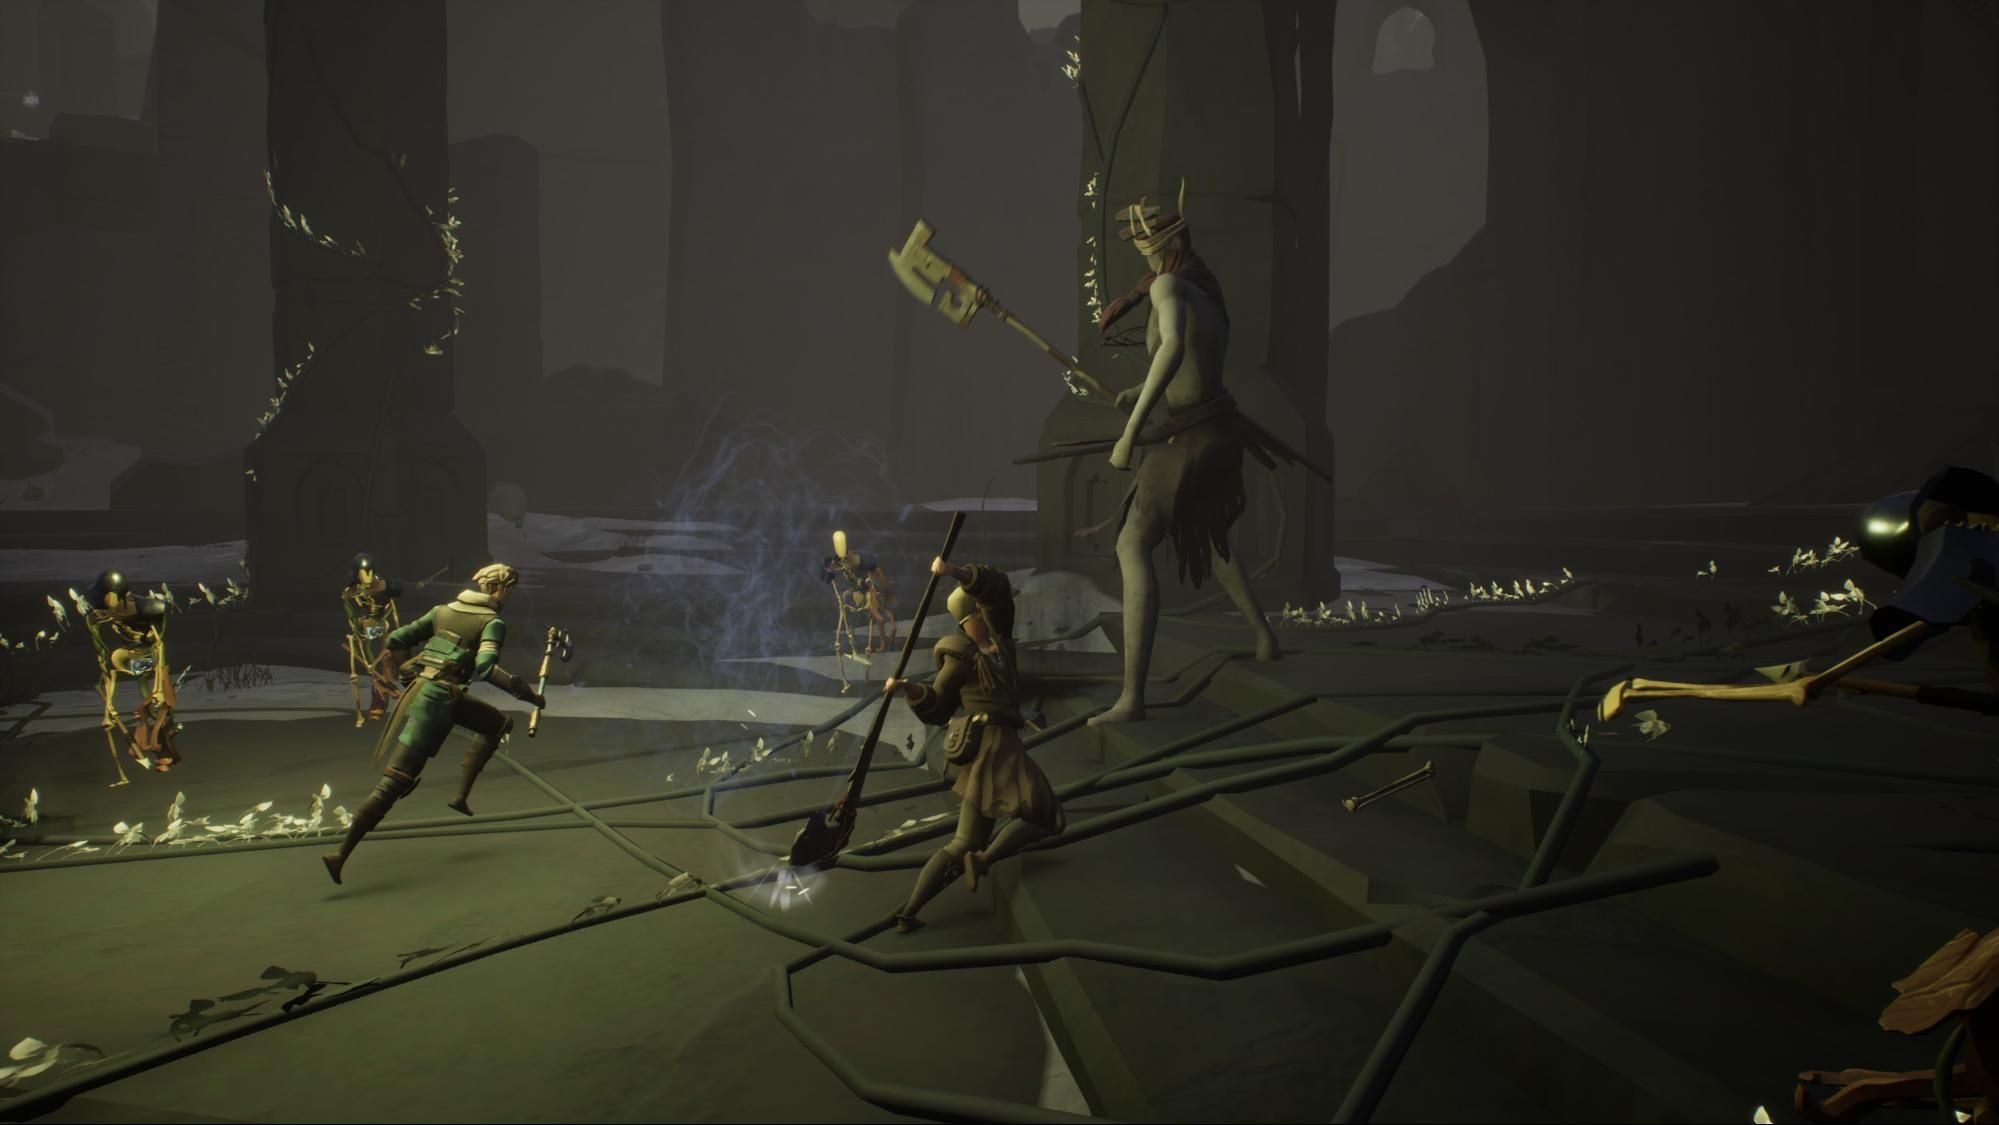 Ashen is a roleplaying game about unknowingly roleplaying an